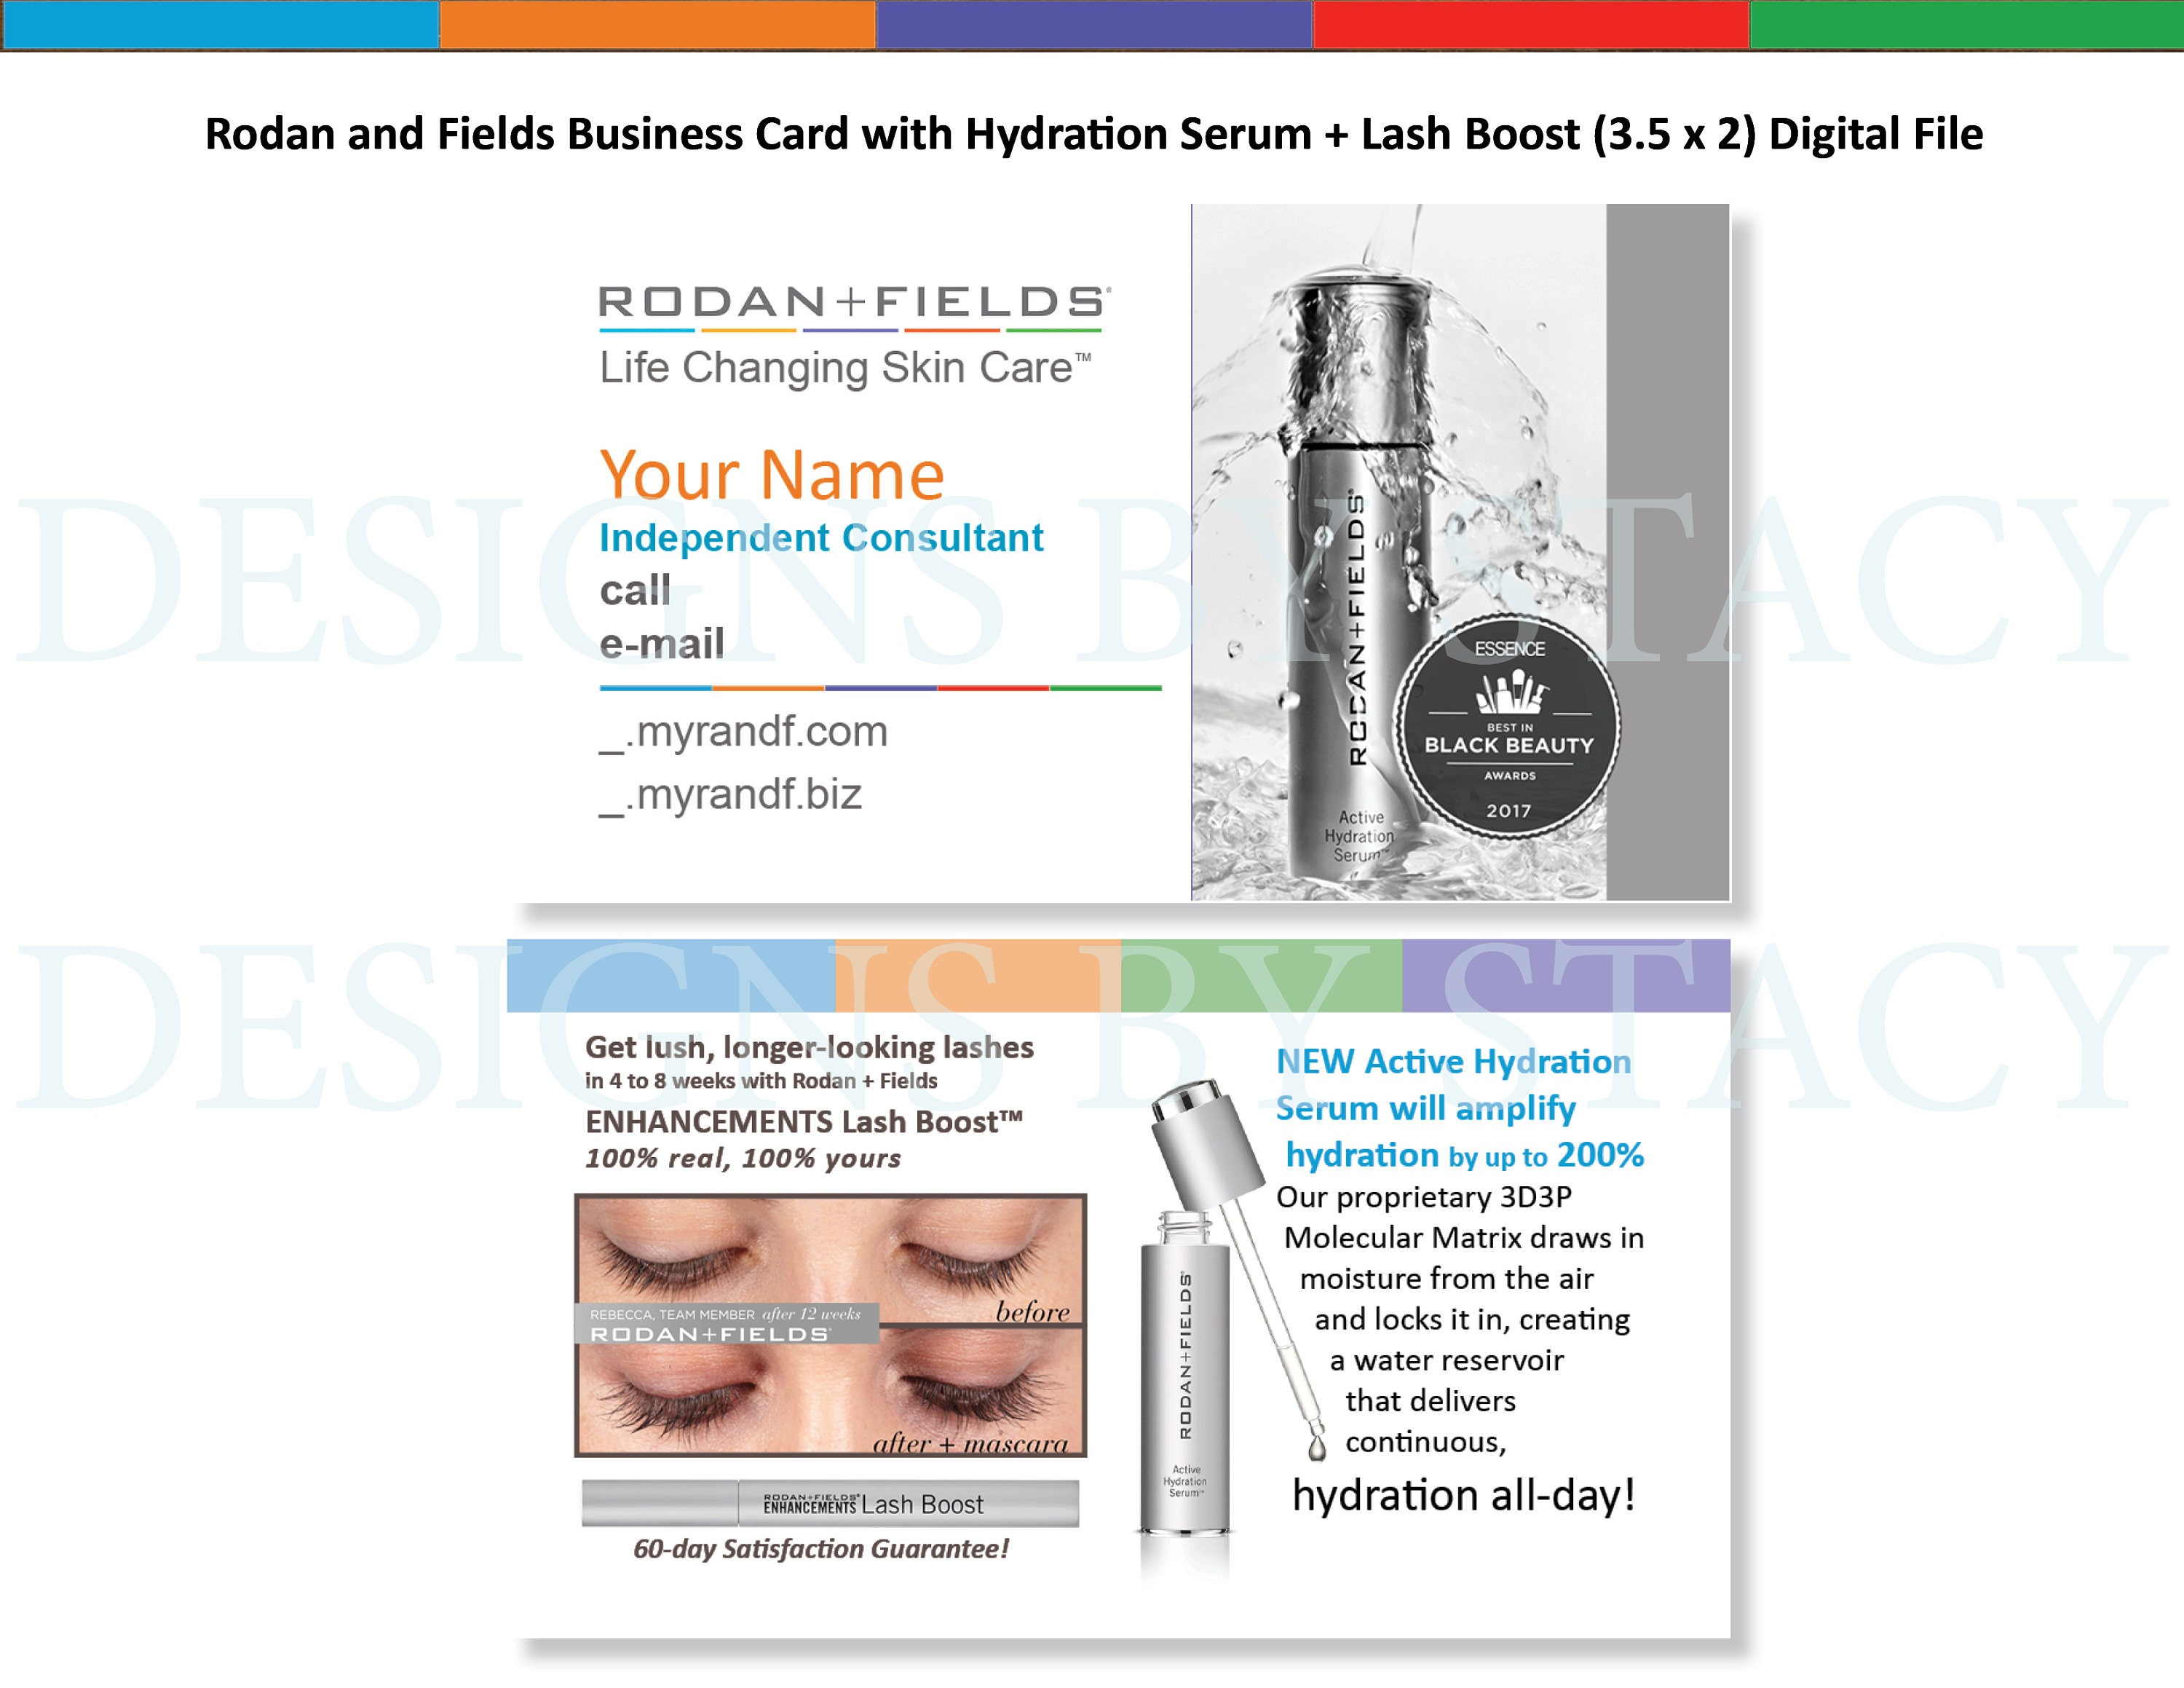 Rodan and Fields Business Card with Hydration Serum Lash